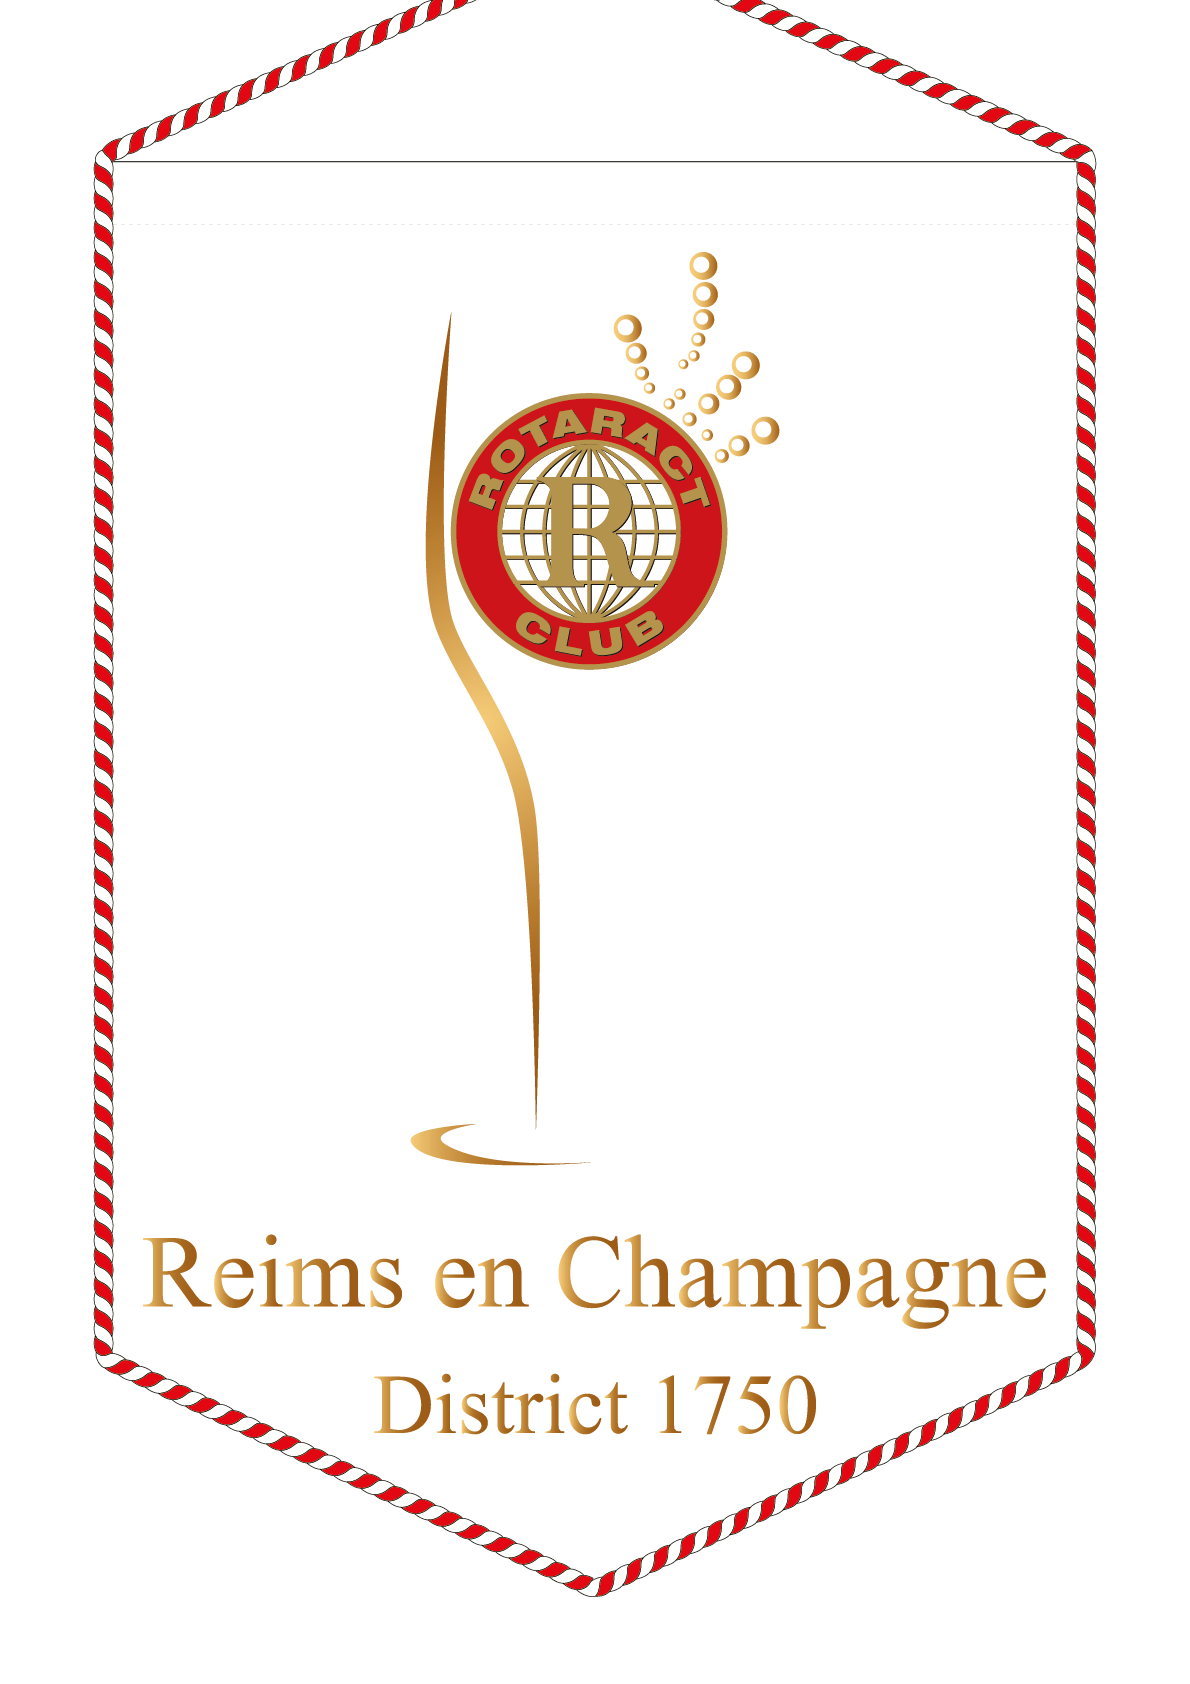 FANION ROTARACT CLUB REIMS EN CHAMPAGNE